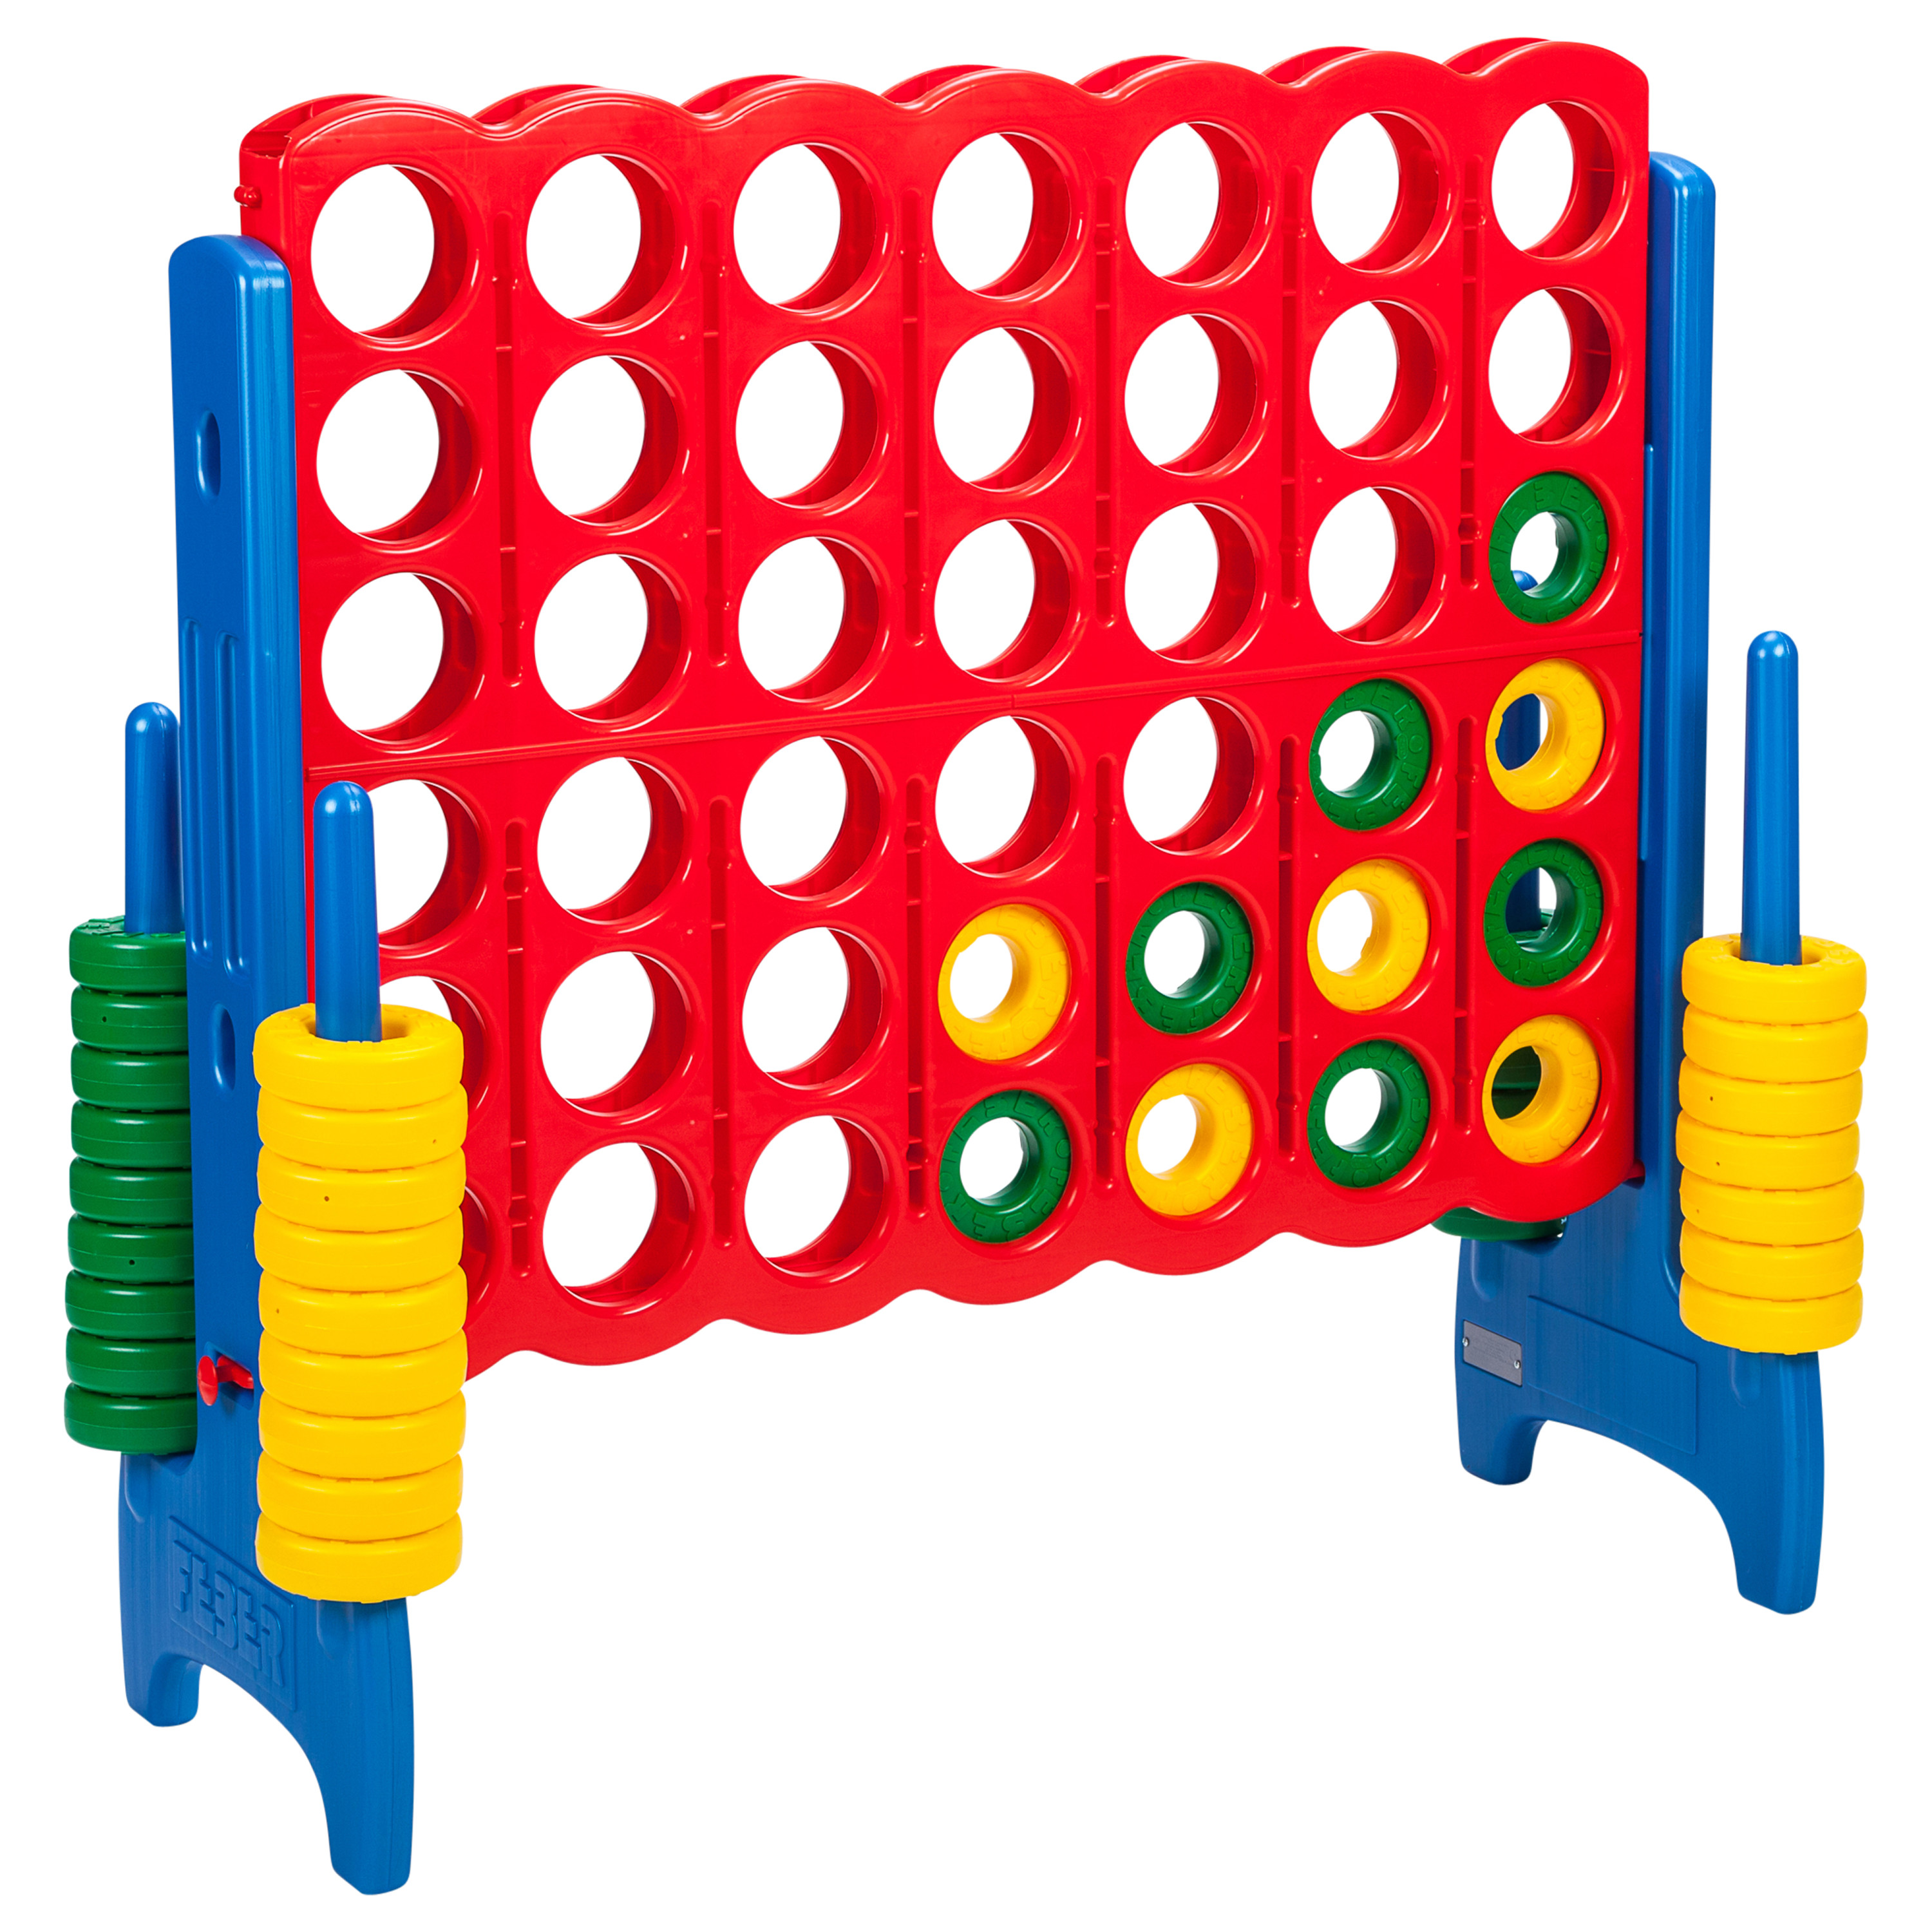 GIANT Connect Four  4' H x 3.5' W